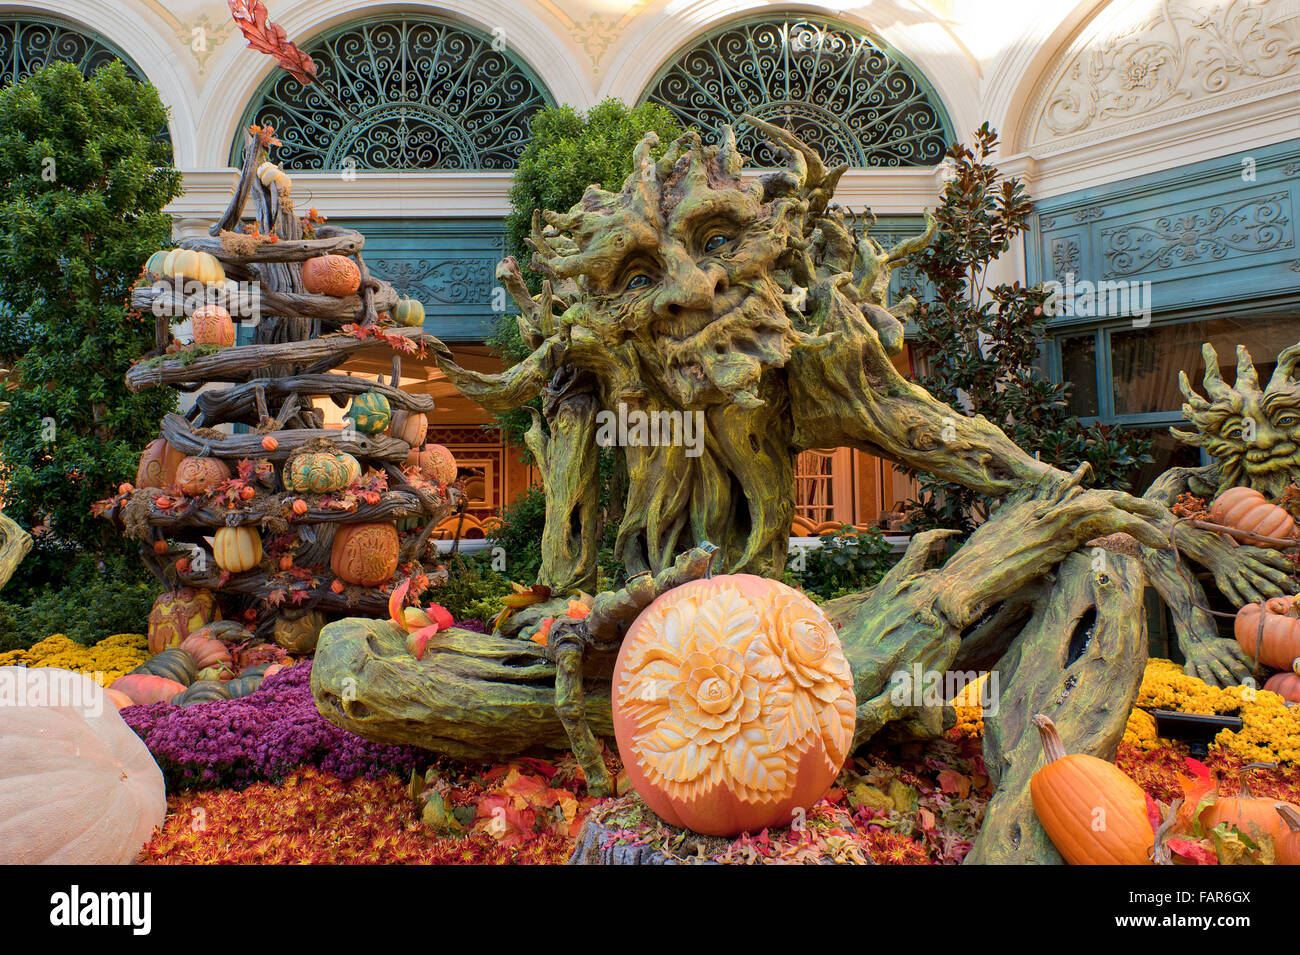 From casinos to shopping and all the nightclubs in between, there is always something to do in vegas. Halloween Display At Bellagio Hotel Las Vegas Nevada Stock Photo Alamy